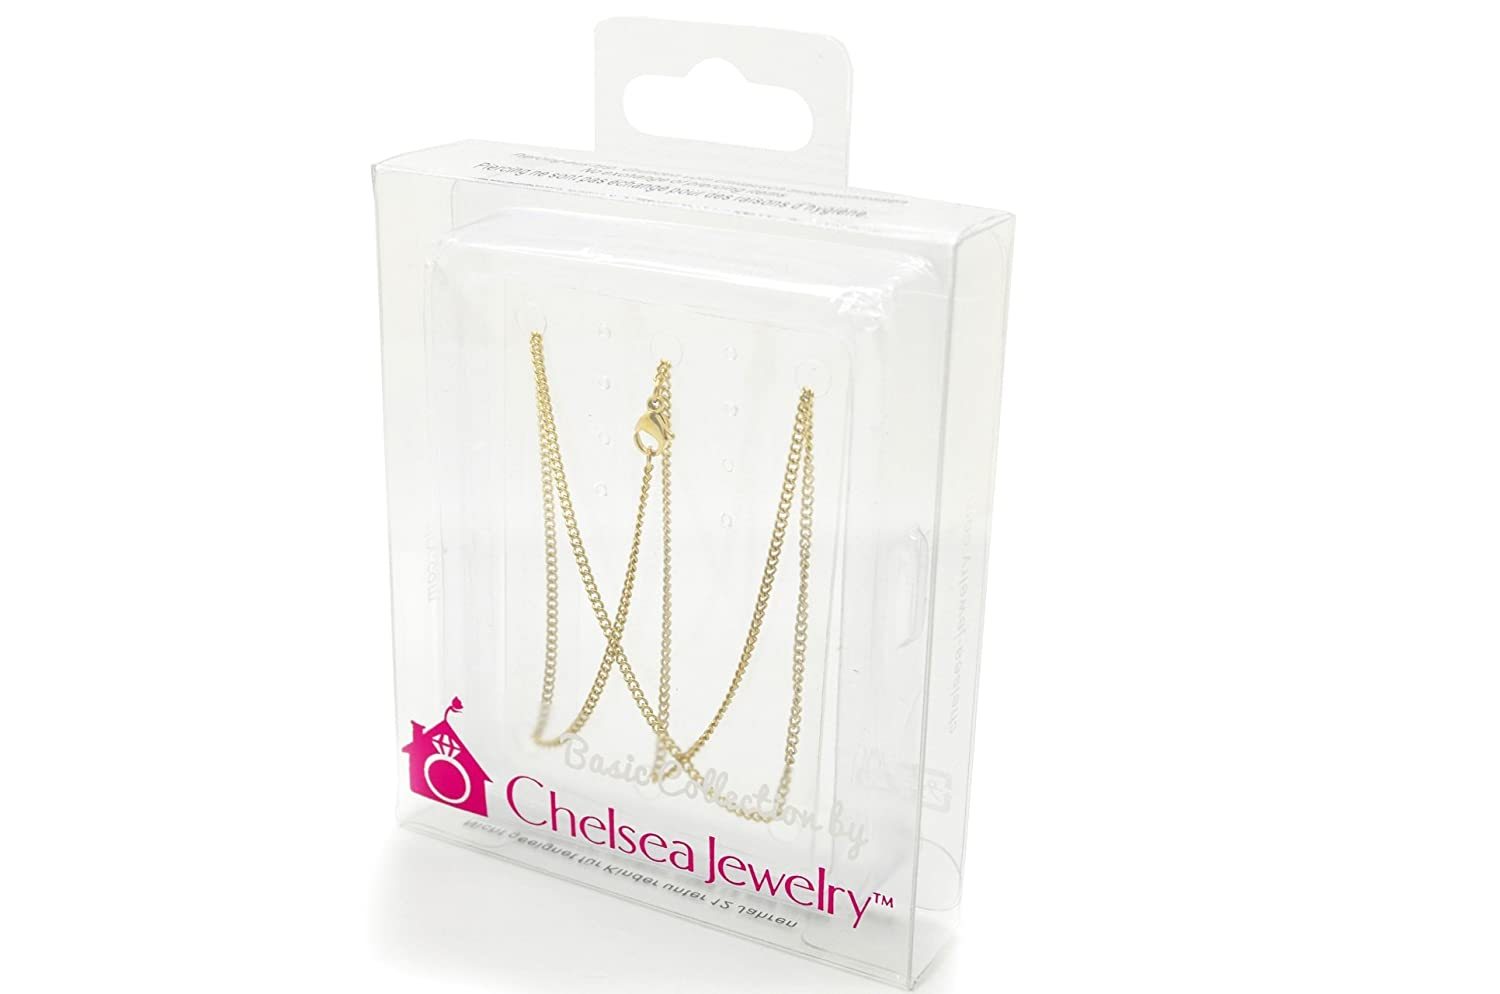 Chelsea Jewelry Basic Collections Italian Designed 1.9mm Wide 18K Gold Concave Curb Classic Link Chain Necklace.